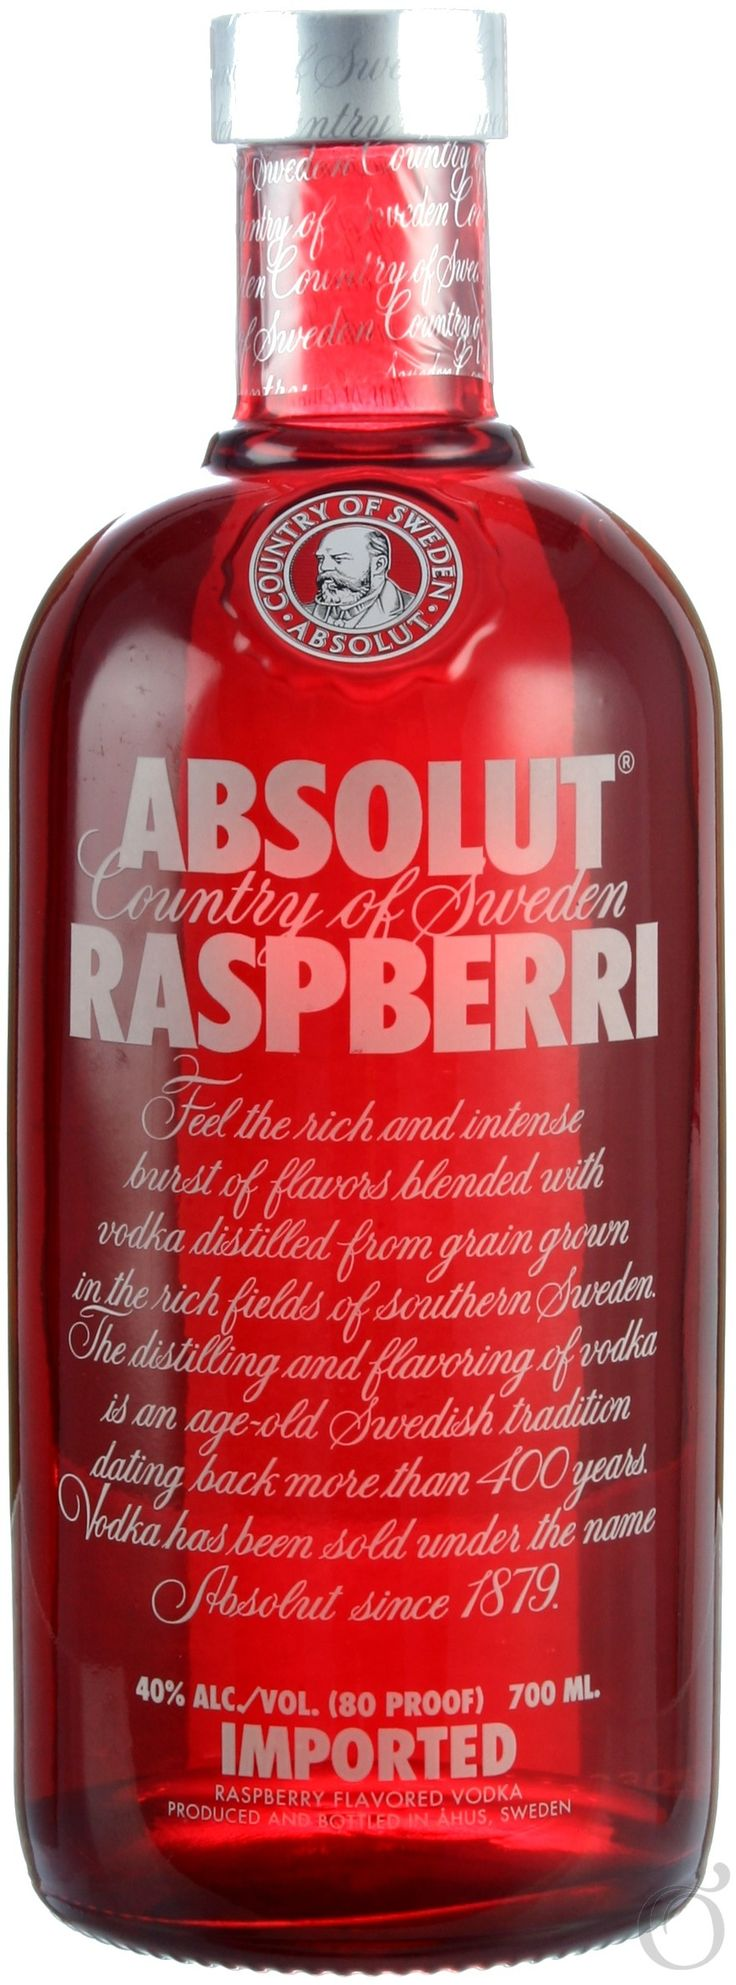 Abosut Rasberri and other flavours of absolut vodka now available at www.newcastle.com.sg . Call us to get the special prices for #absolut